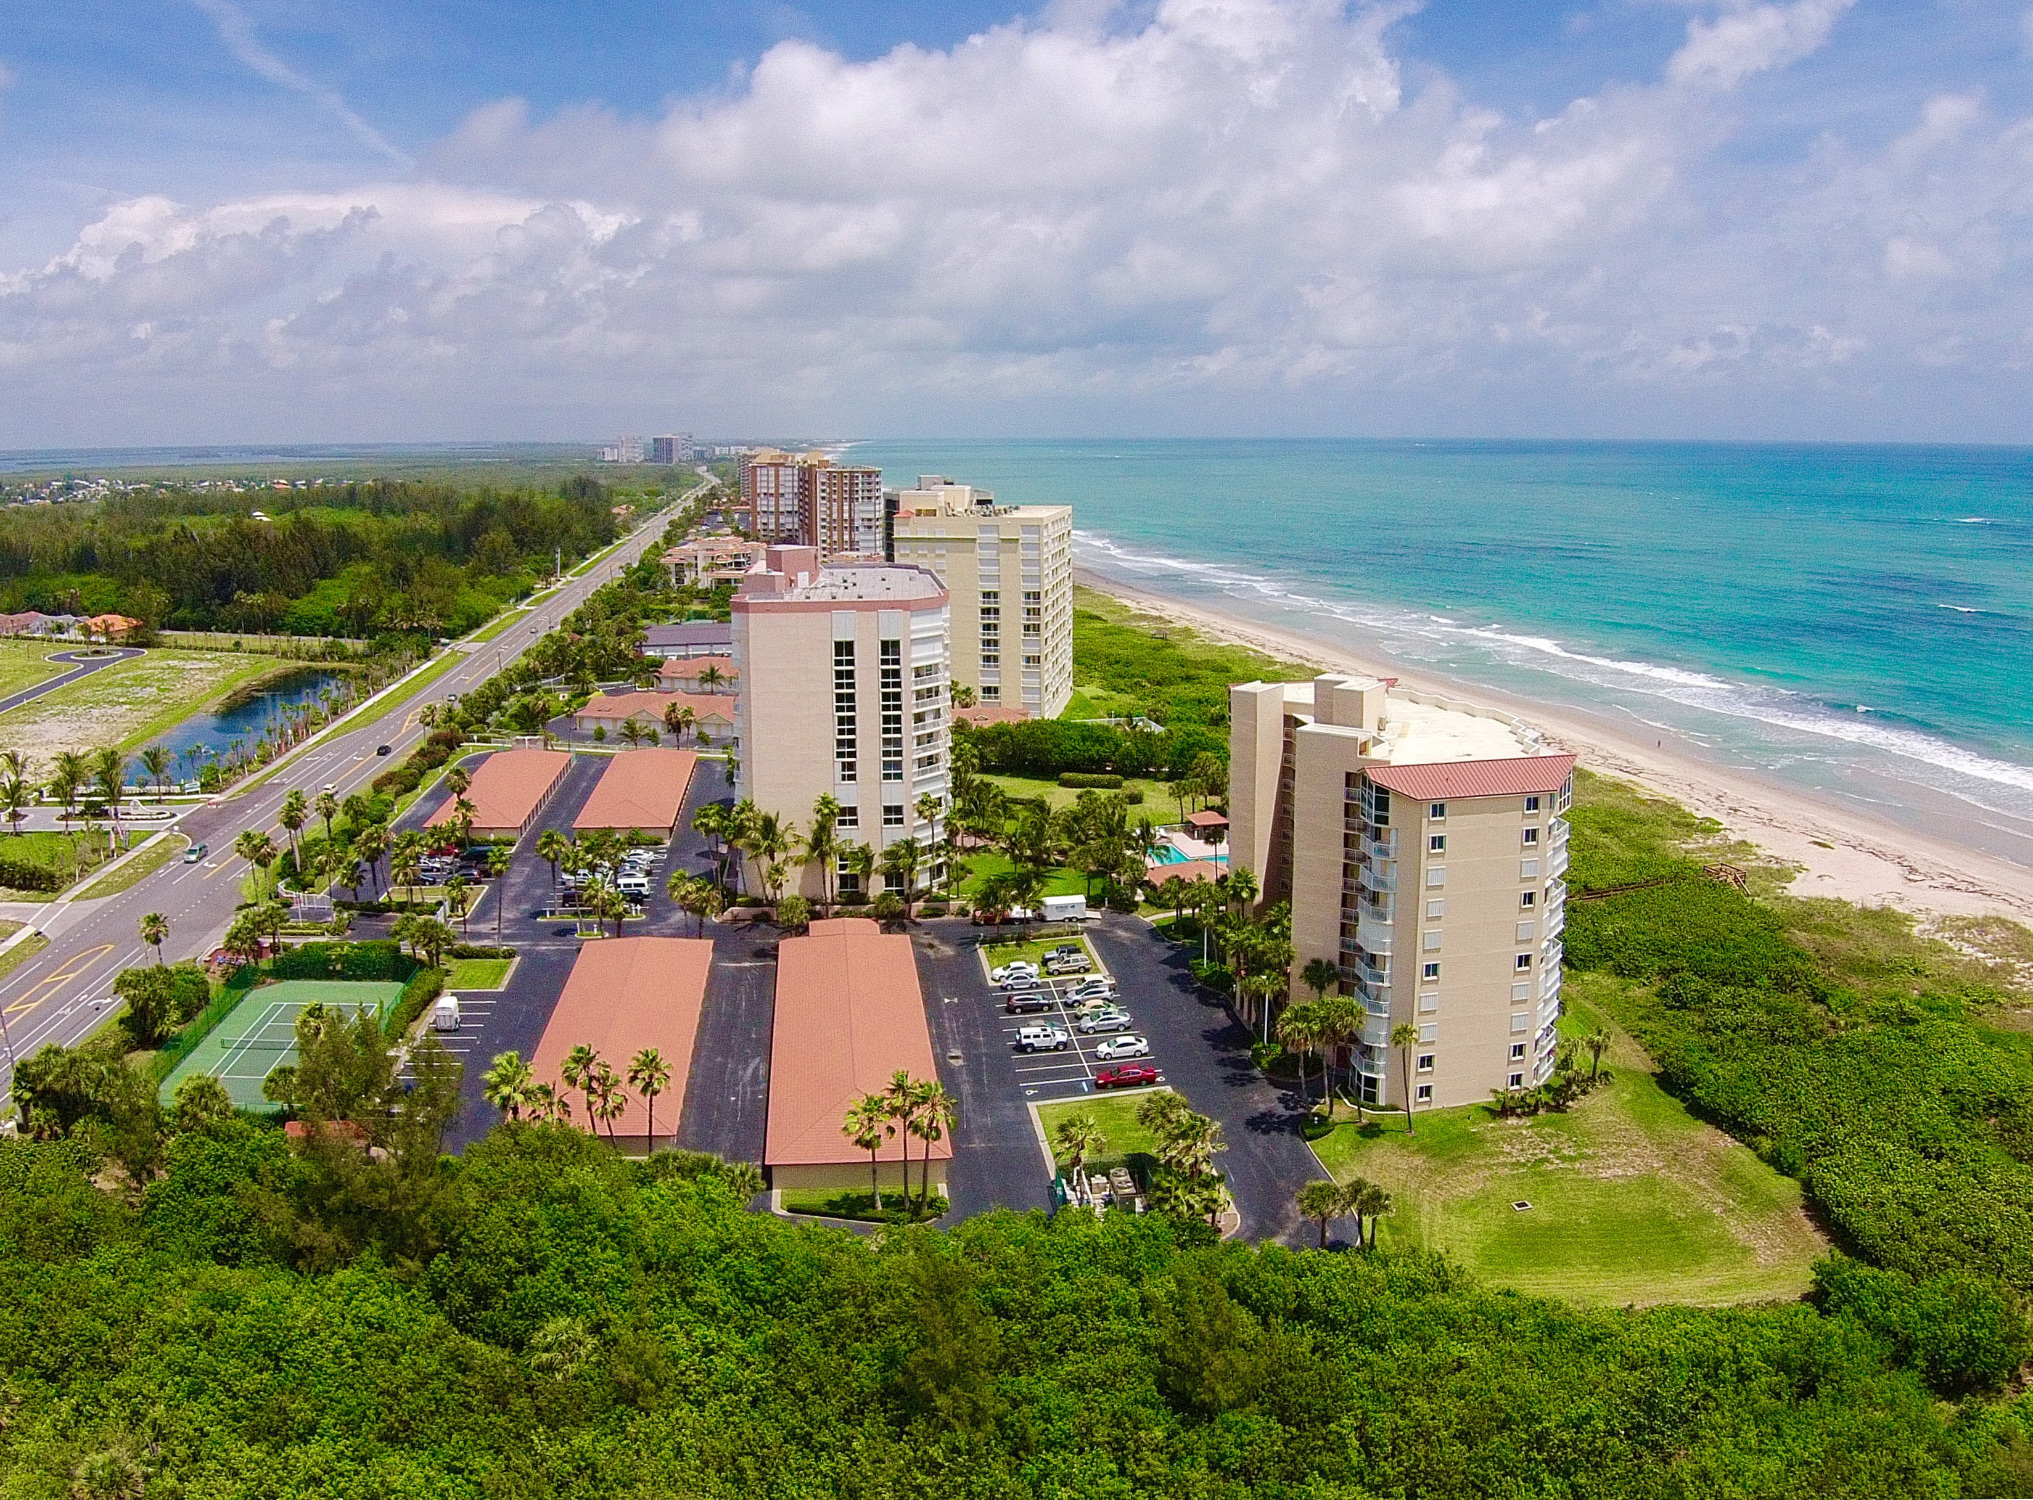 Hibiscus by the Sea - Hutchinson Island - Oceanside Realty Partners